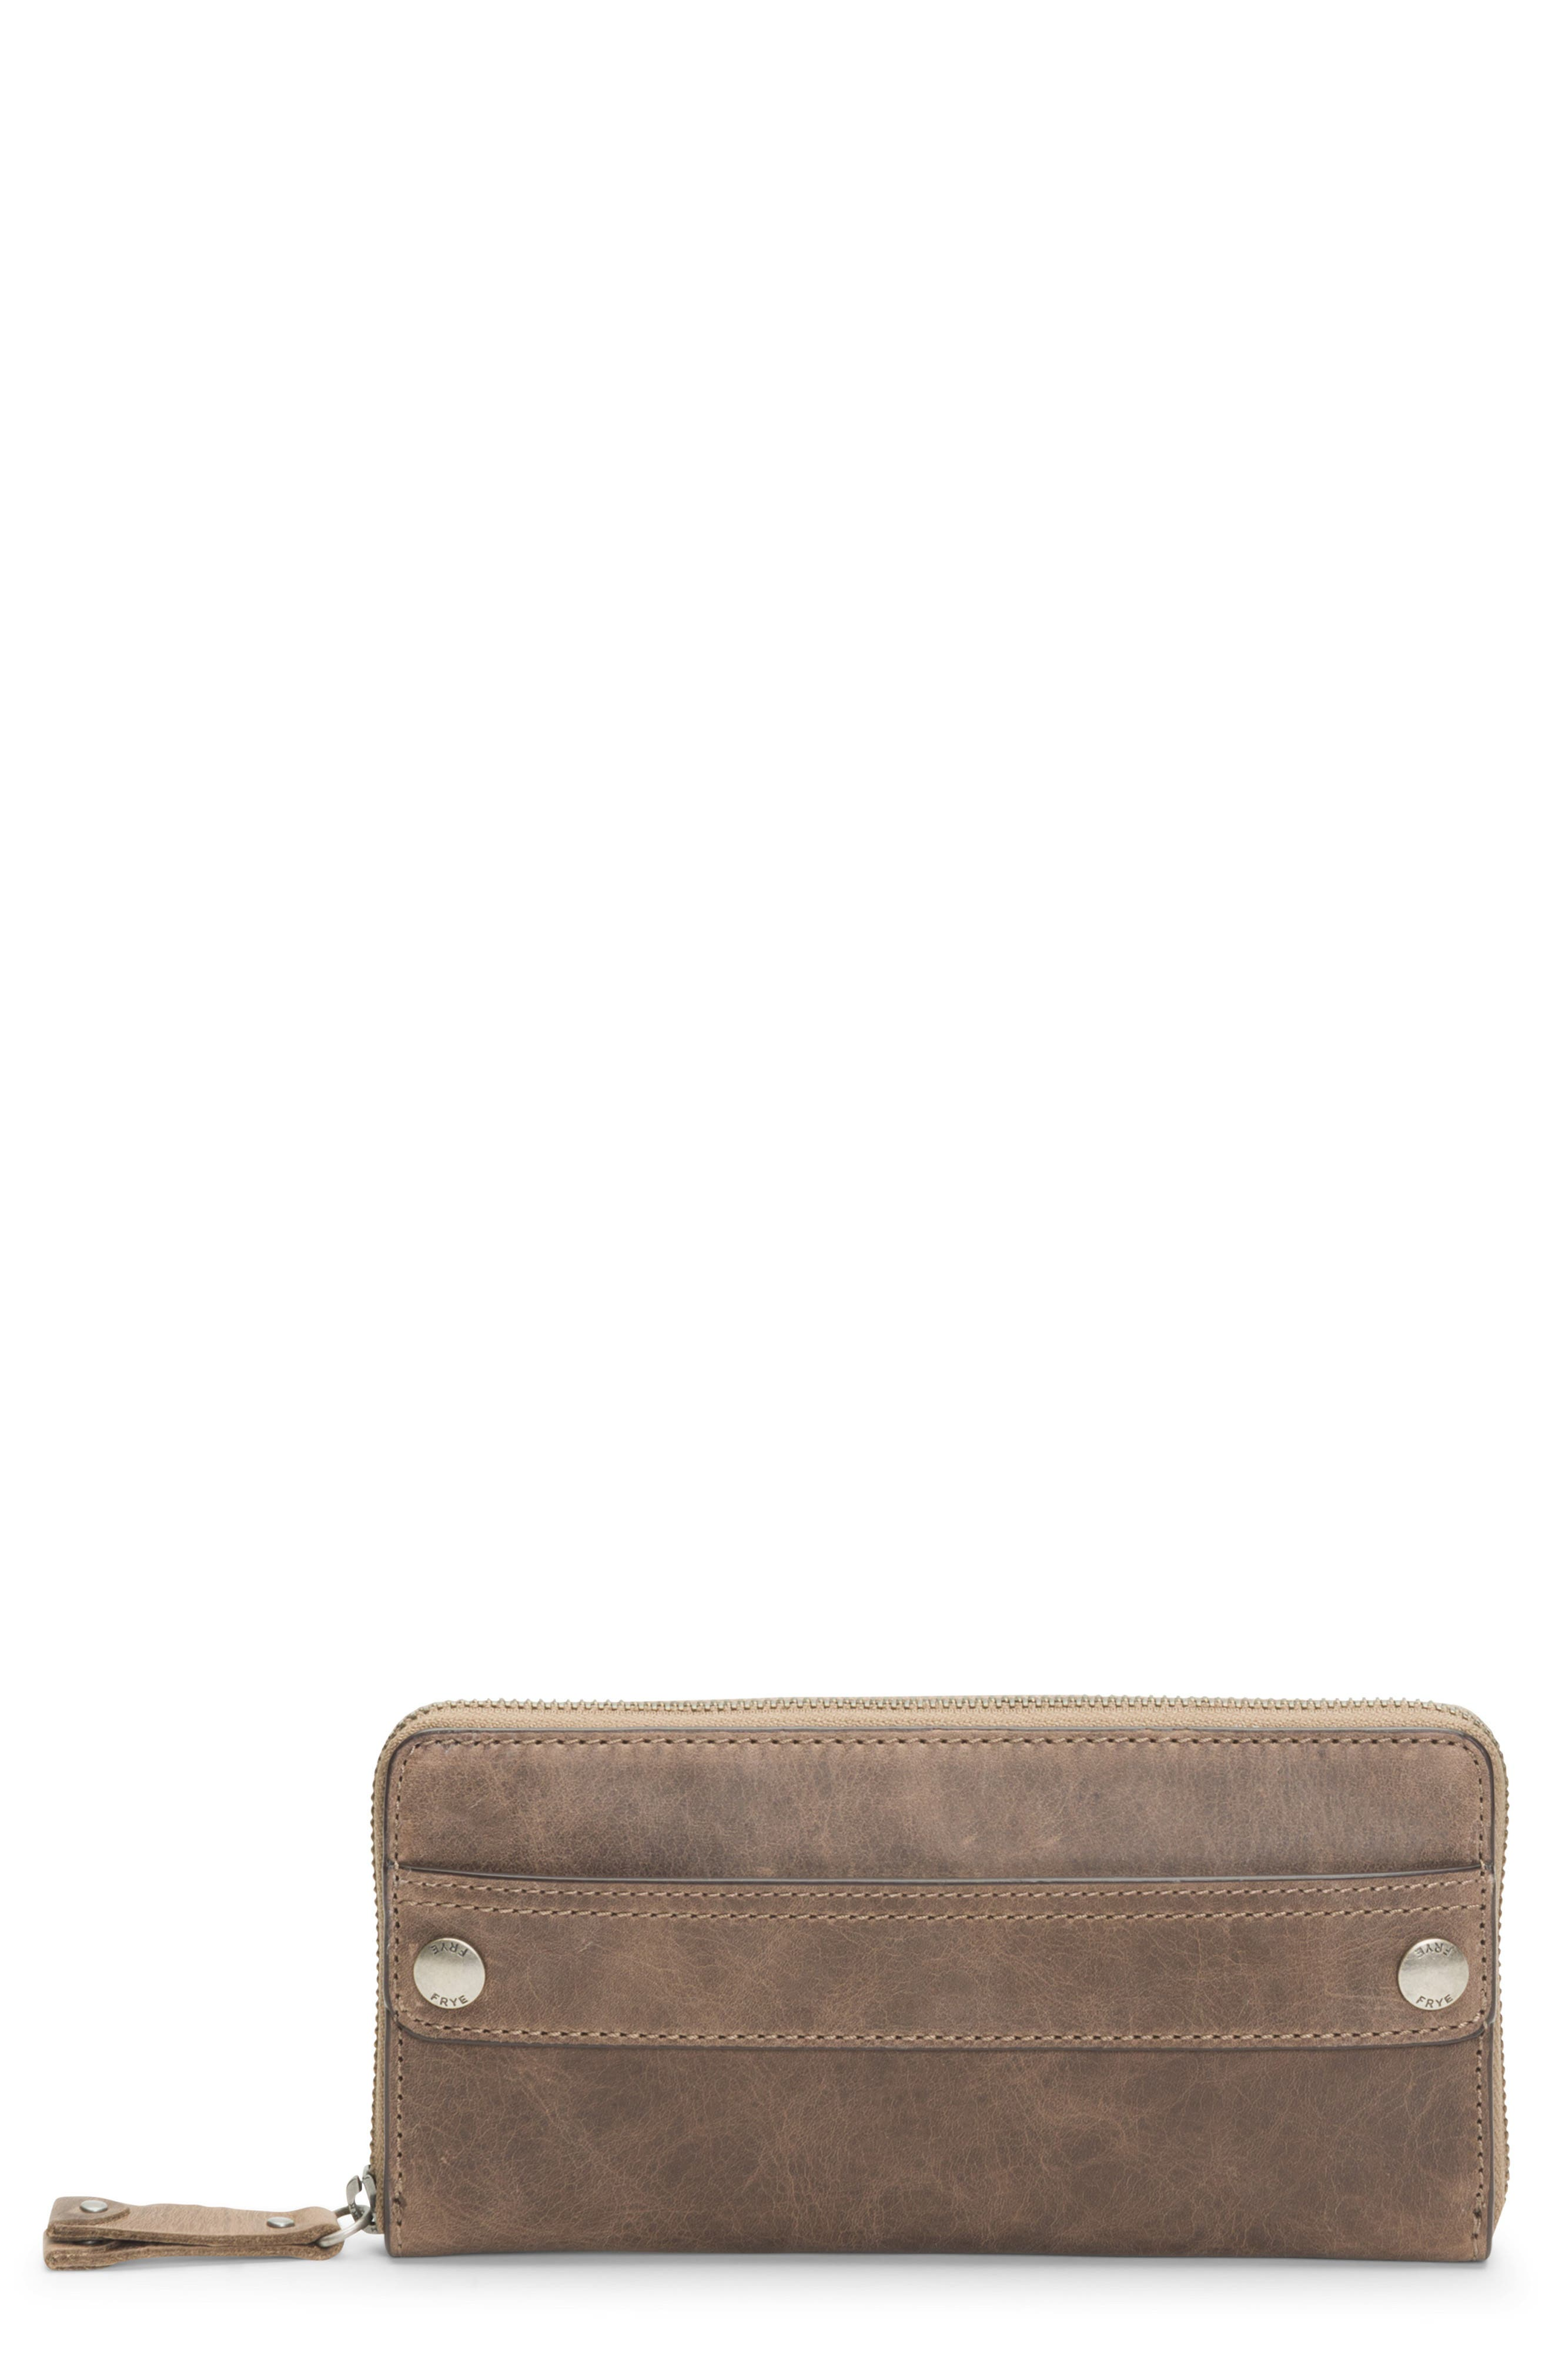 Melissa 2 Leather Zip Wallet,                             Main thumbnail 1, color,                             GREY